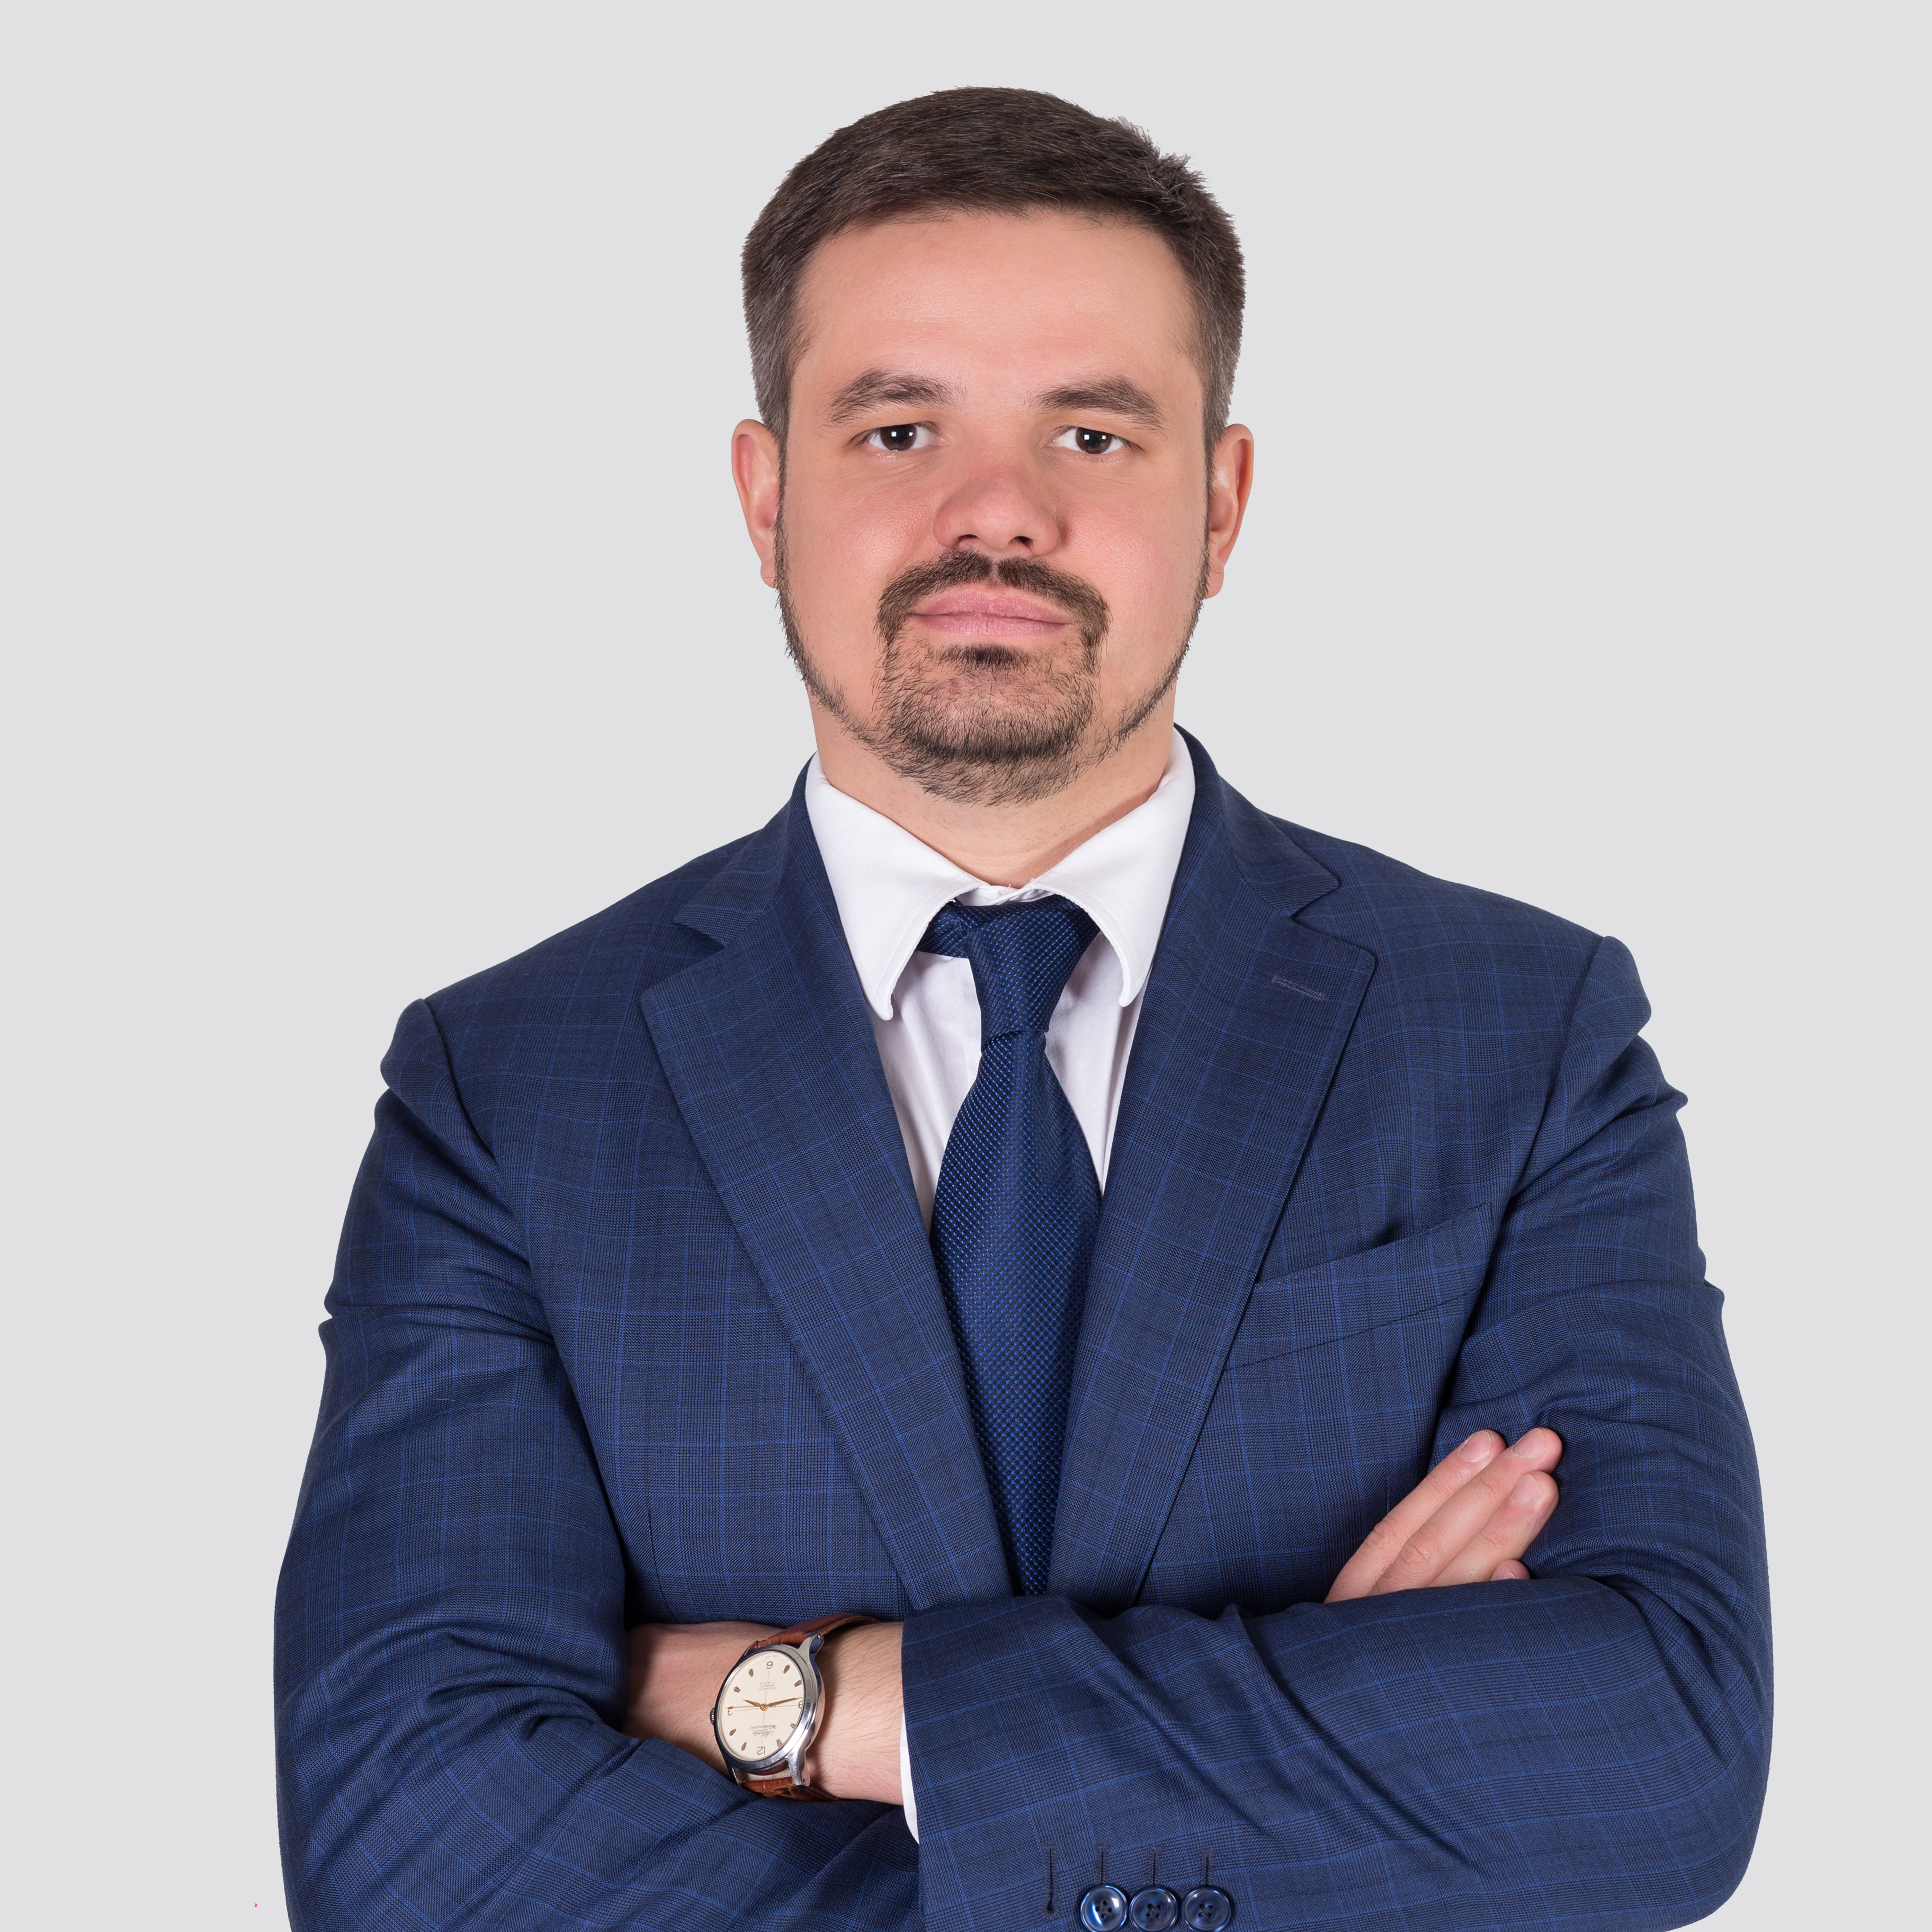 Oleh Goretskyy: The main achievement of a lawyer is his experience